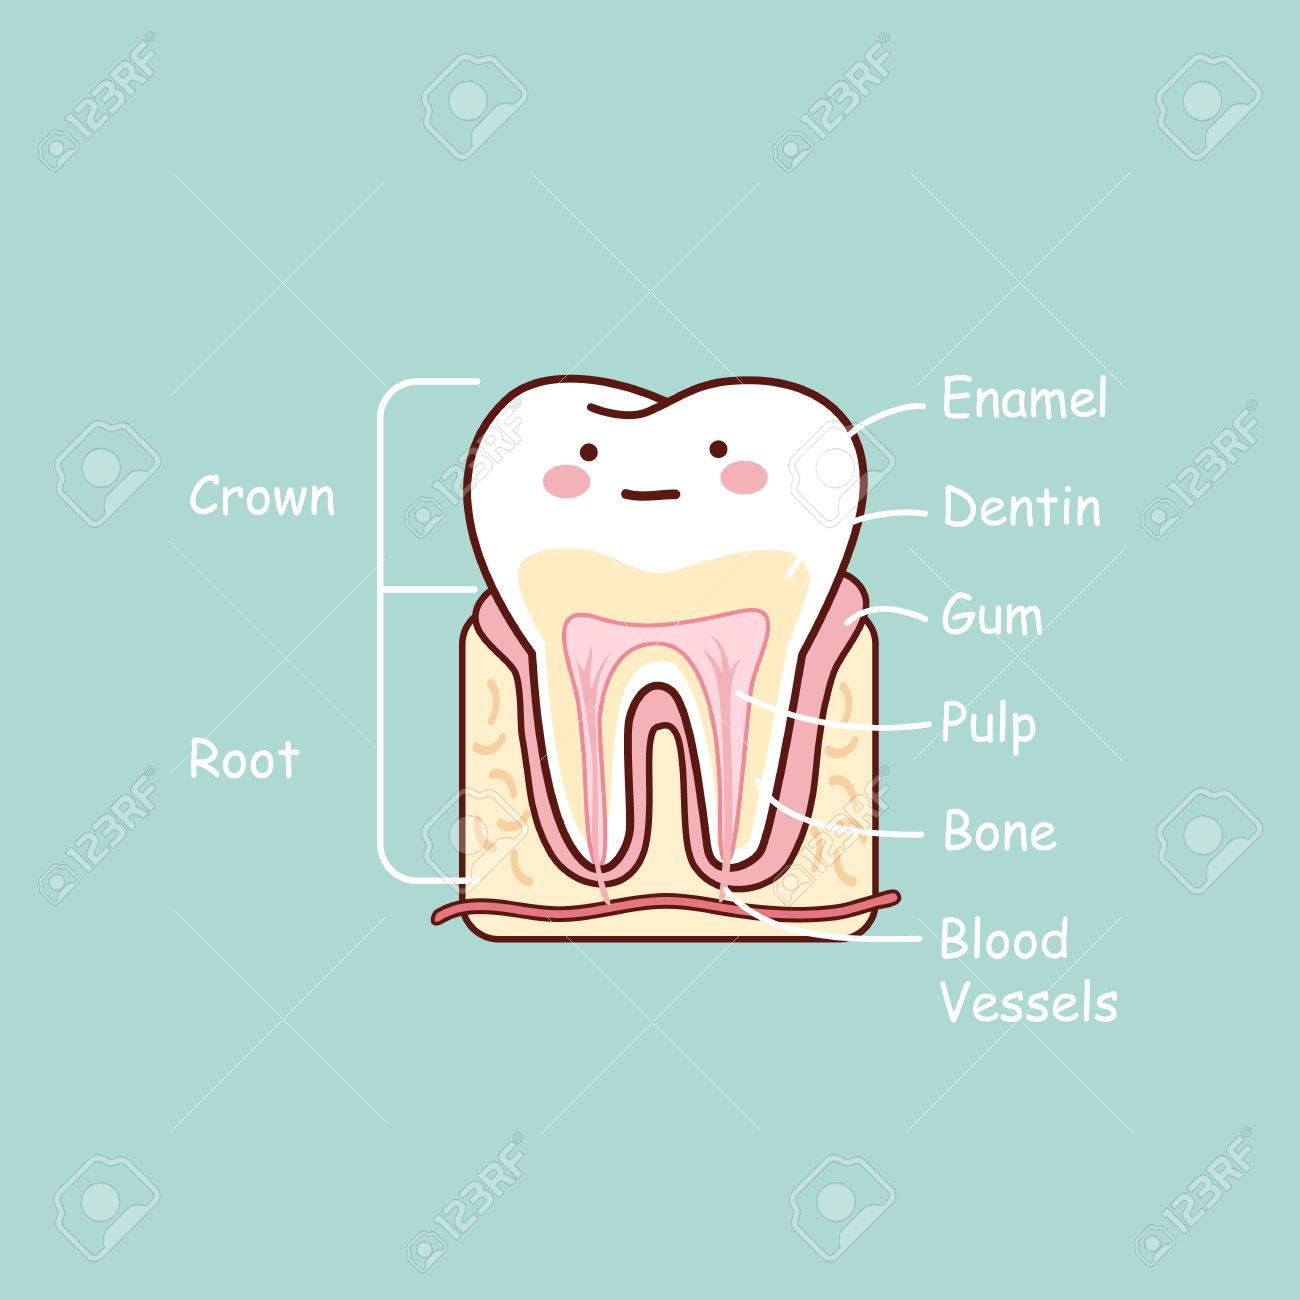 Cartoon Tooth Anatomy Chart Great For Dental Care And Teeth